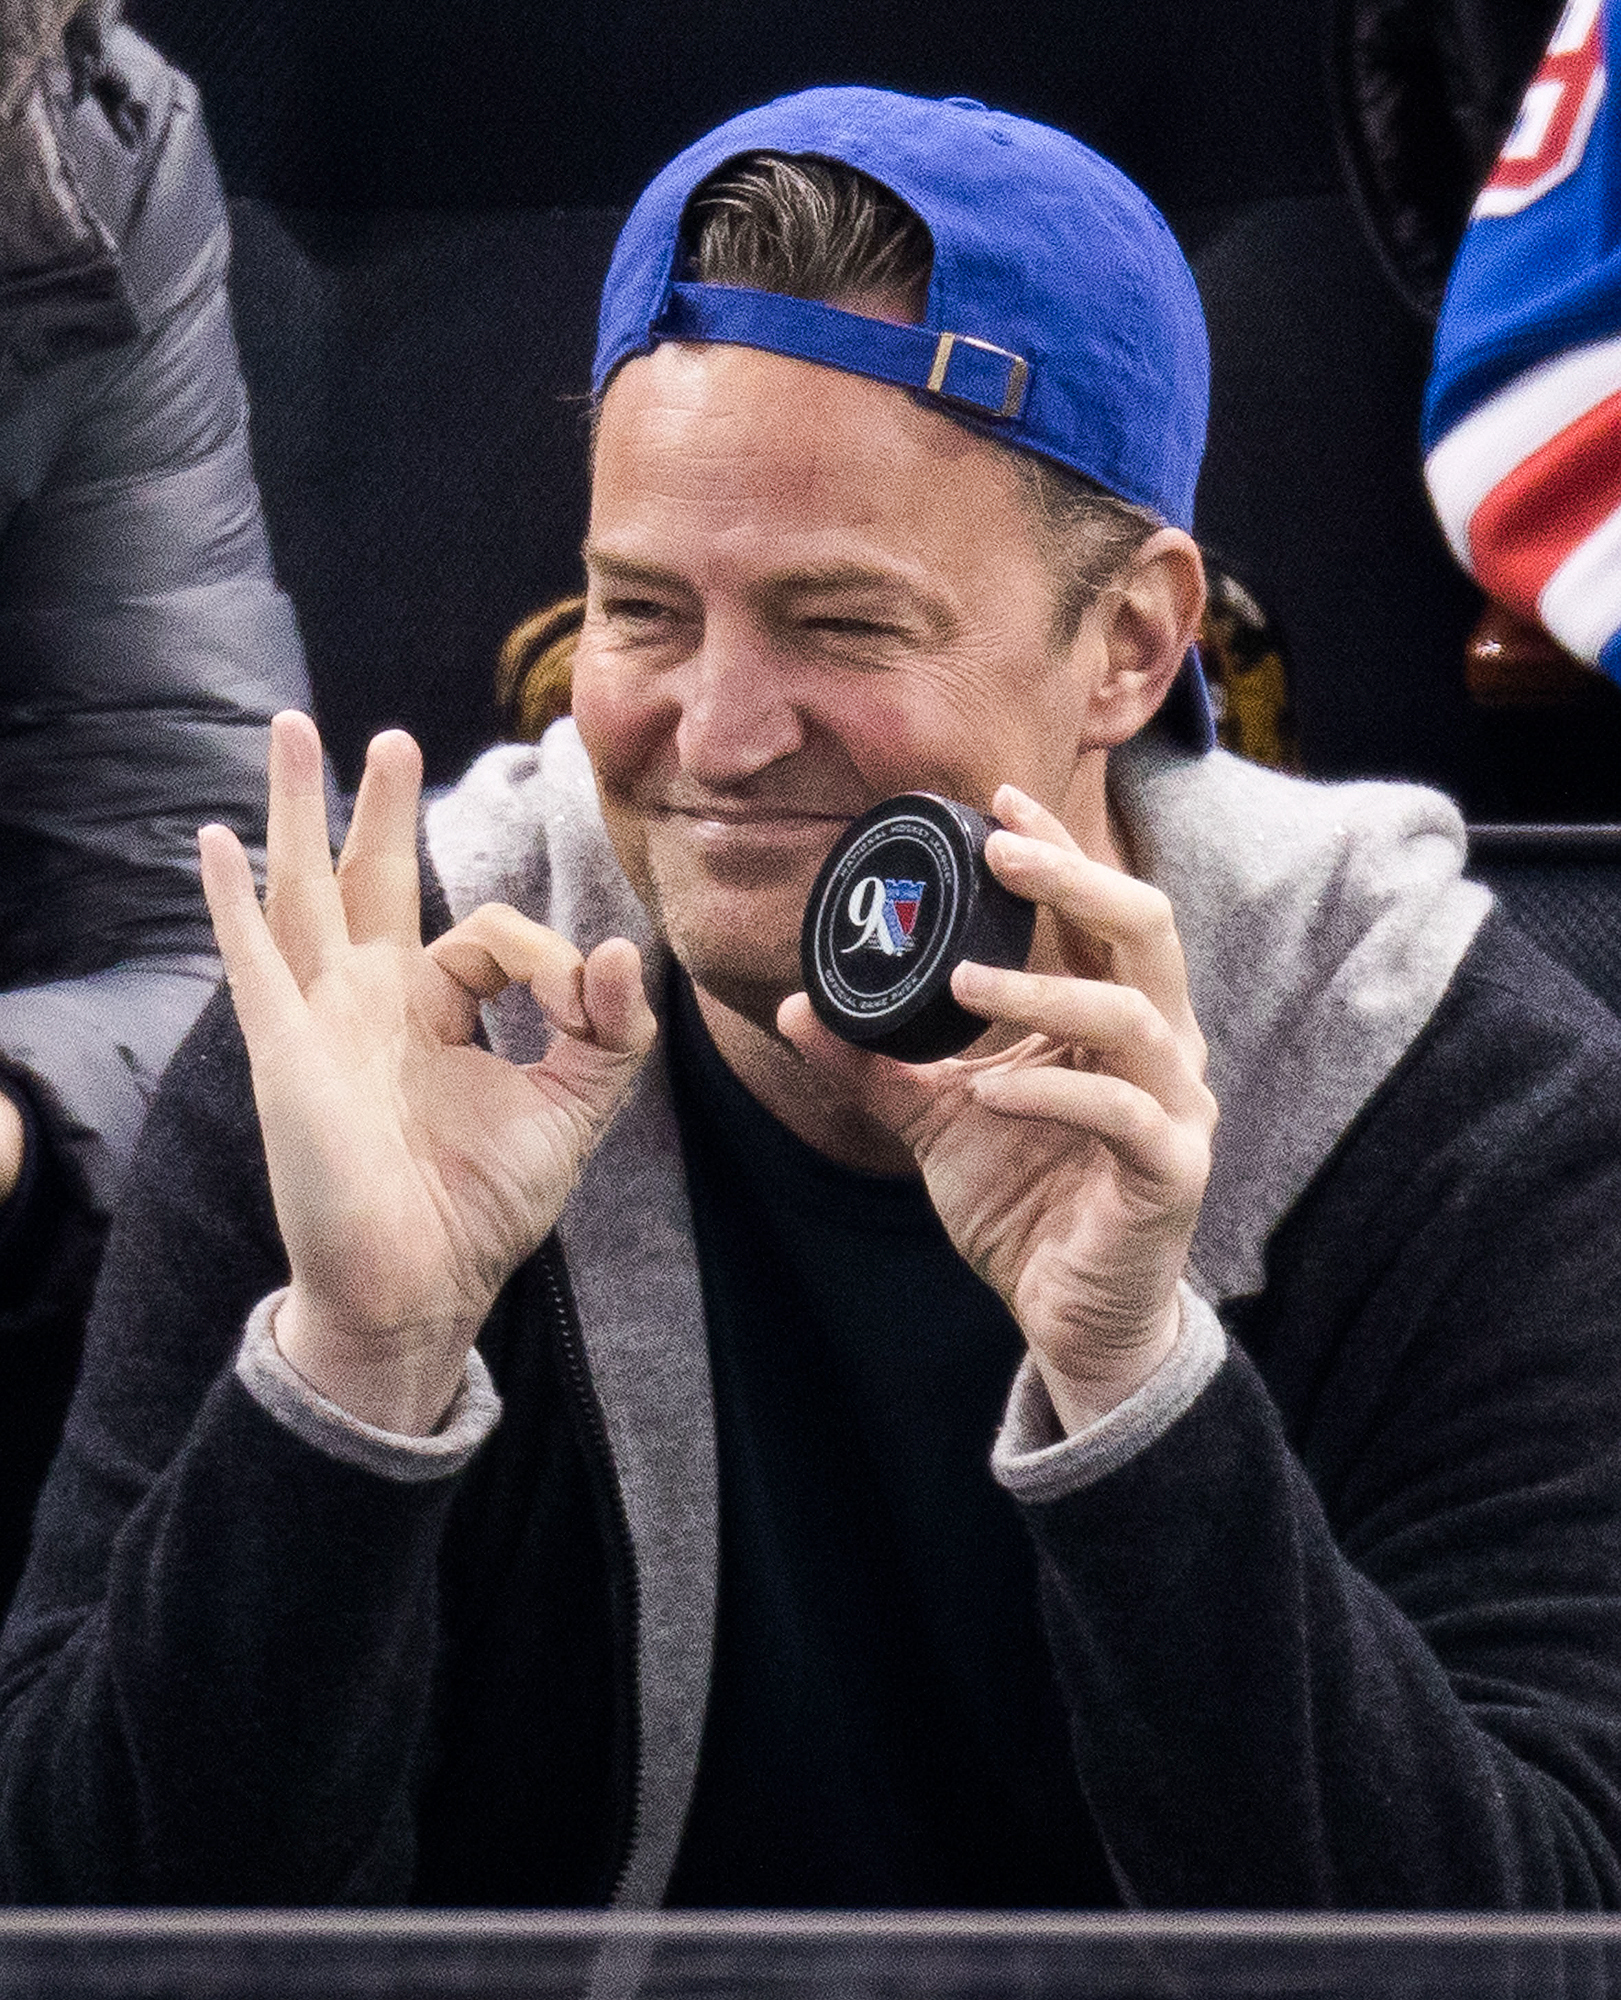 Celebrities Attend Pittsburgh Penguins Vs. New York Rangers -  March 31, 2017